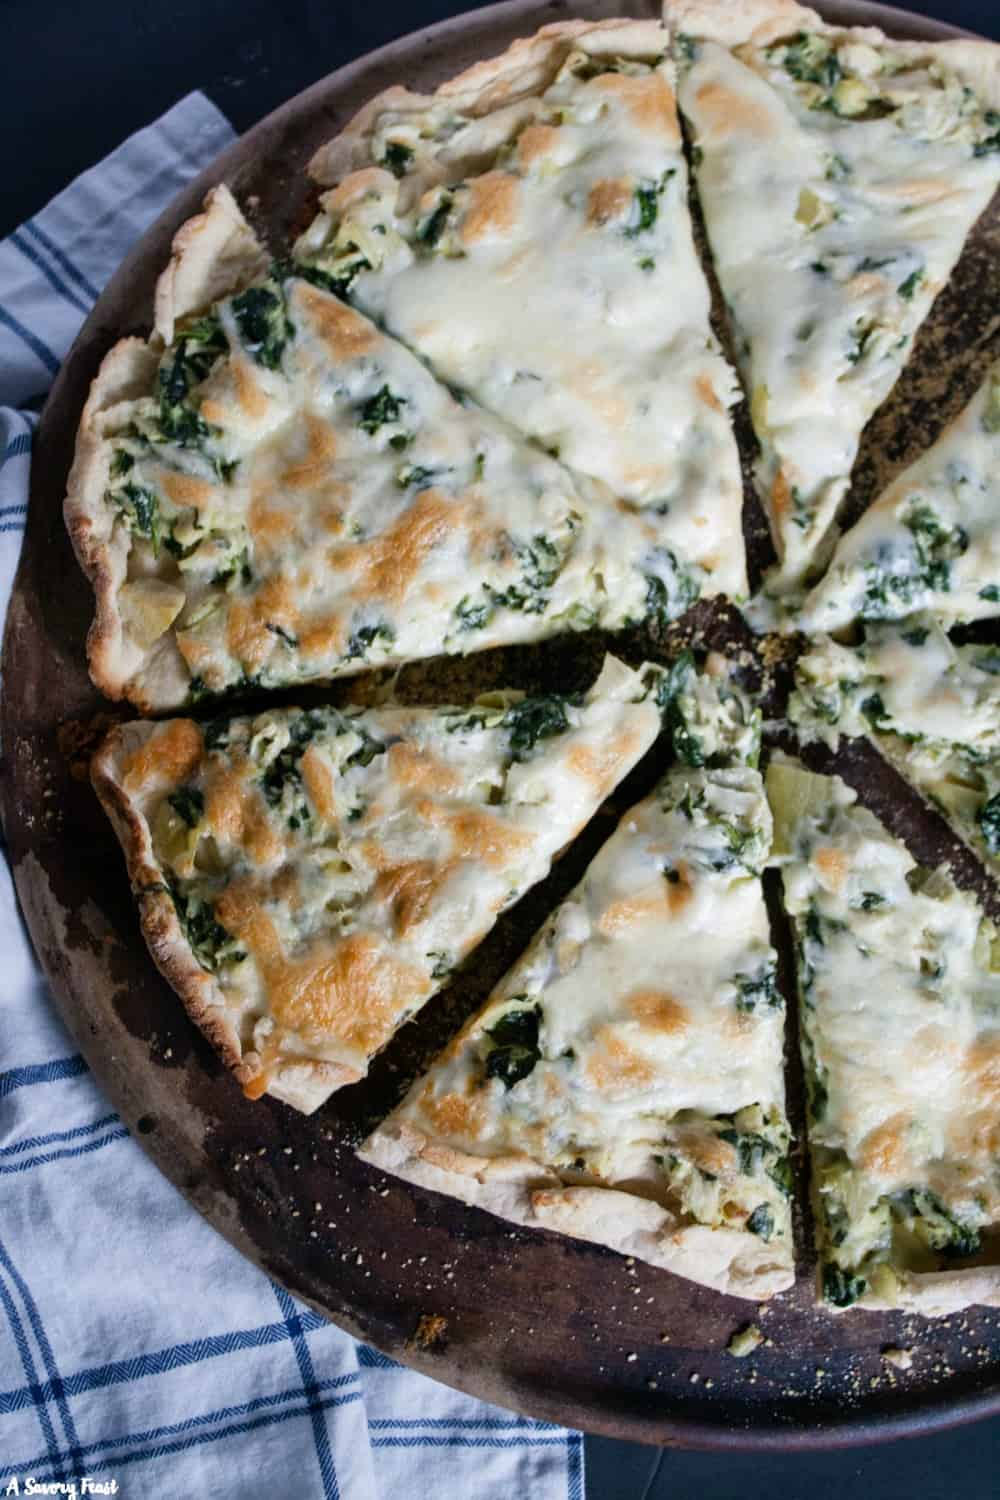 Homemade pizza night just got even better with thisChicken, Spinach & Artichoke Pizza. This new twist on spinach and artichoke dip puts it in pizza form with chicken to make it a complete meal.